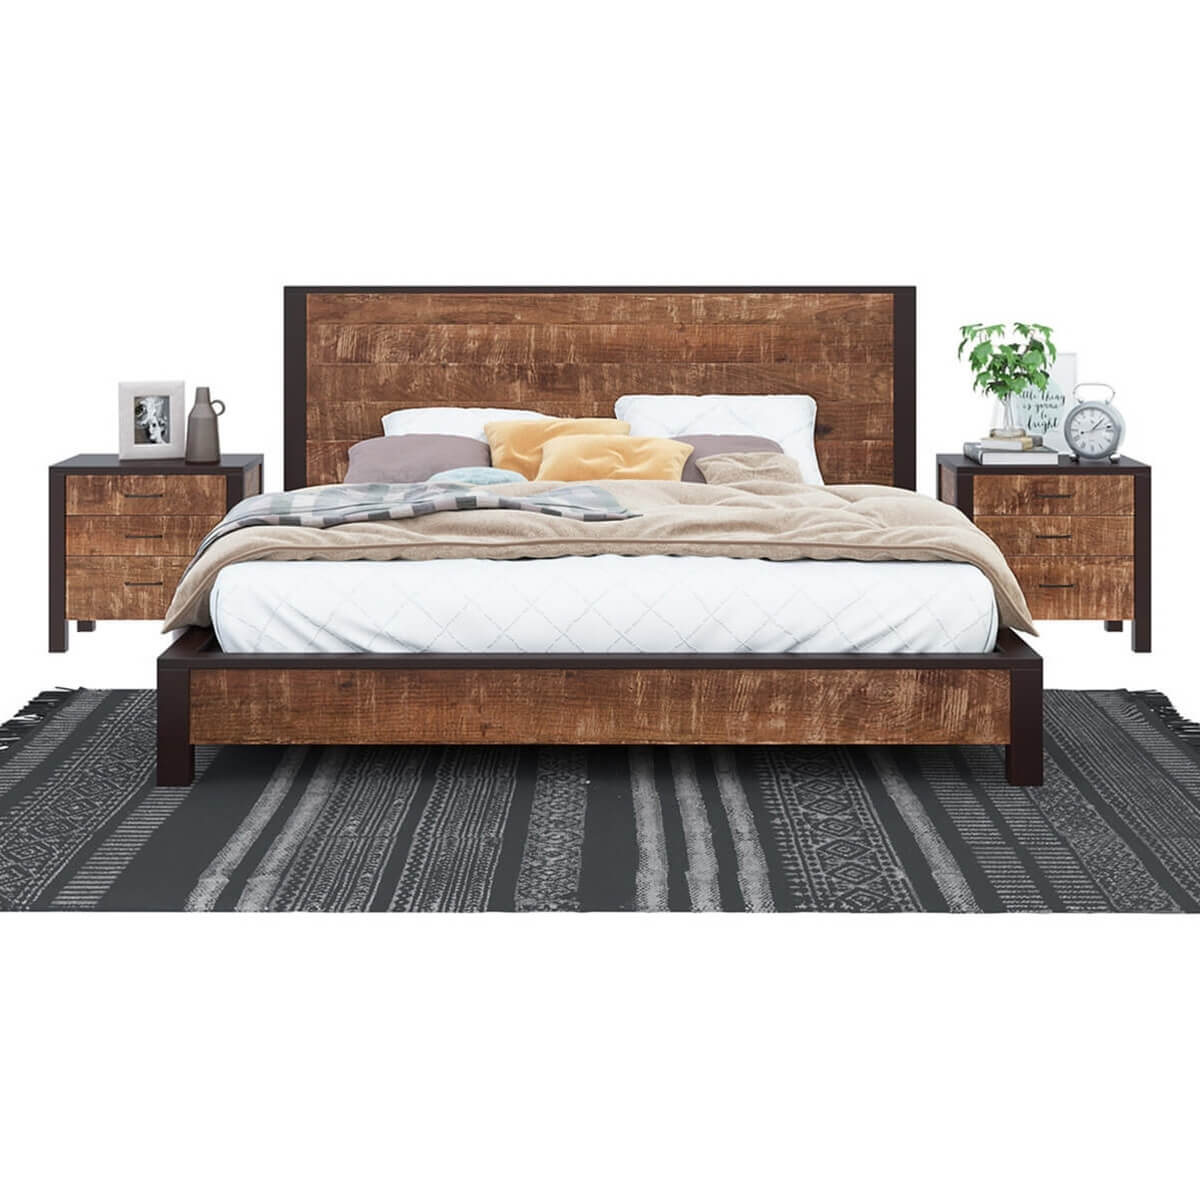 New Orleans Solid Wood Platform Bed Frame W Headboard And